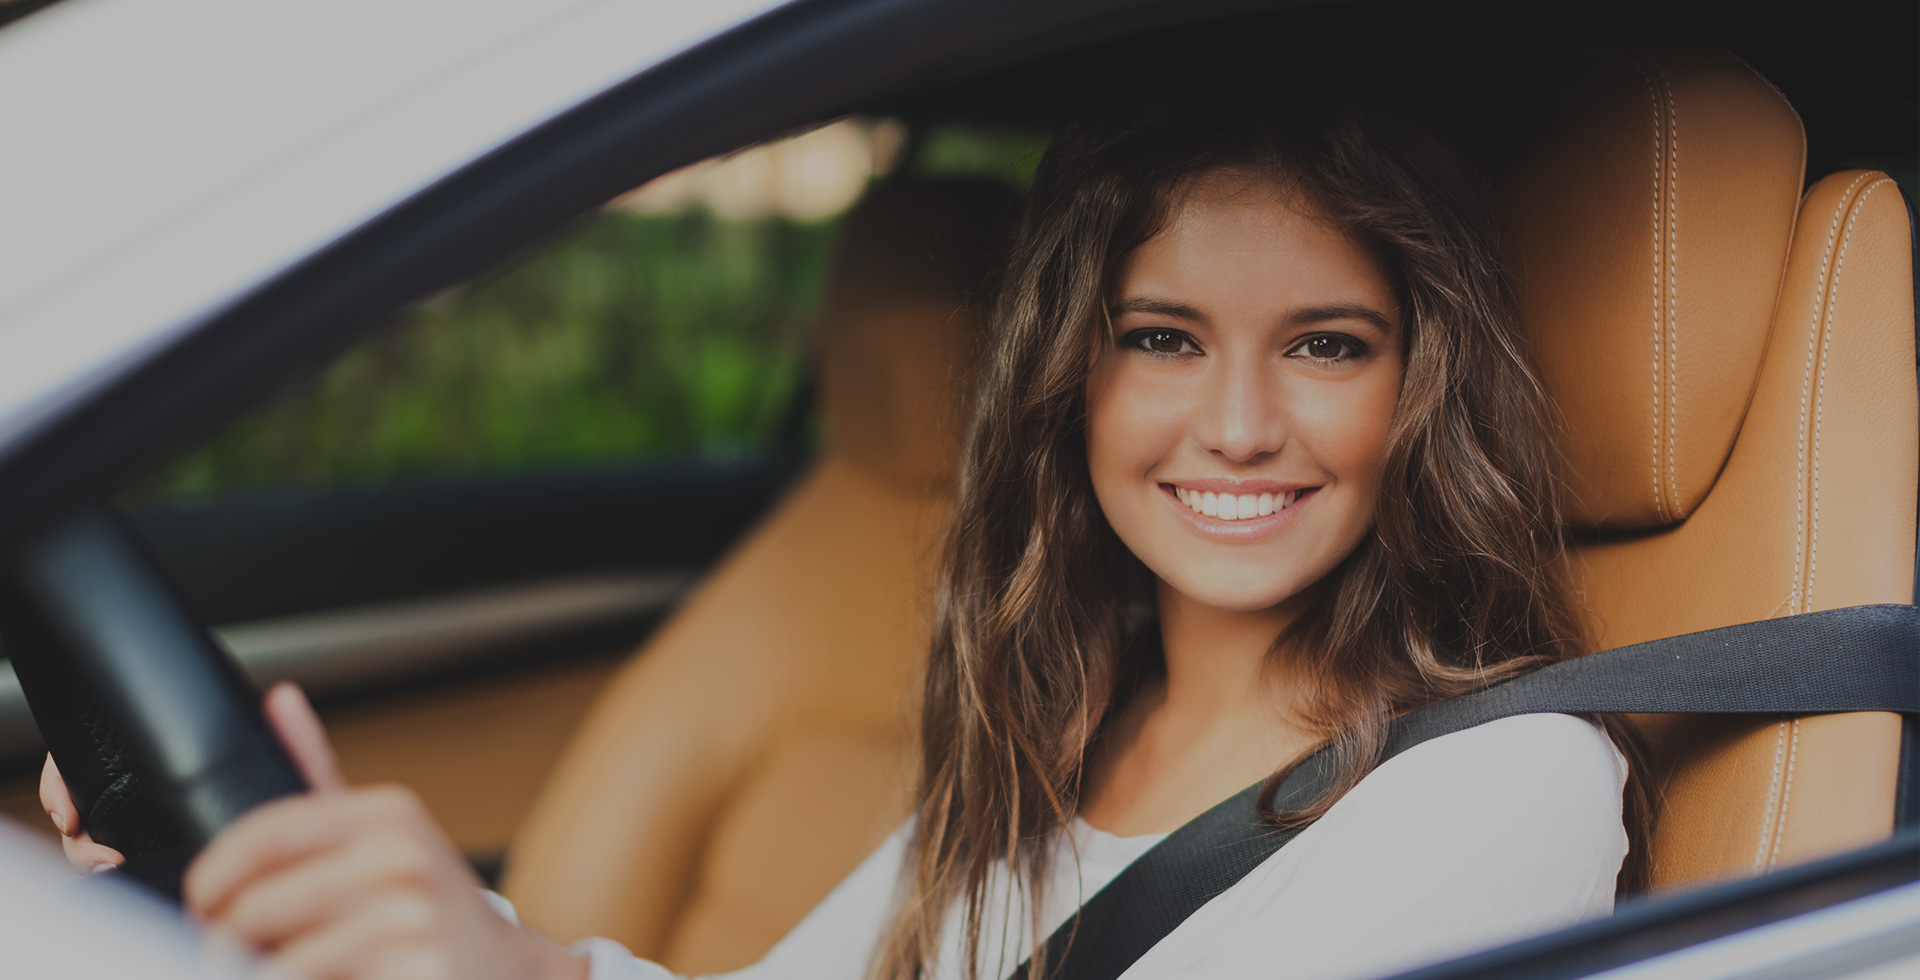 Woman in driver seat of car